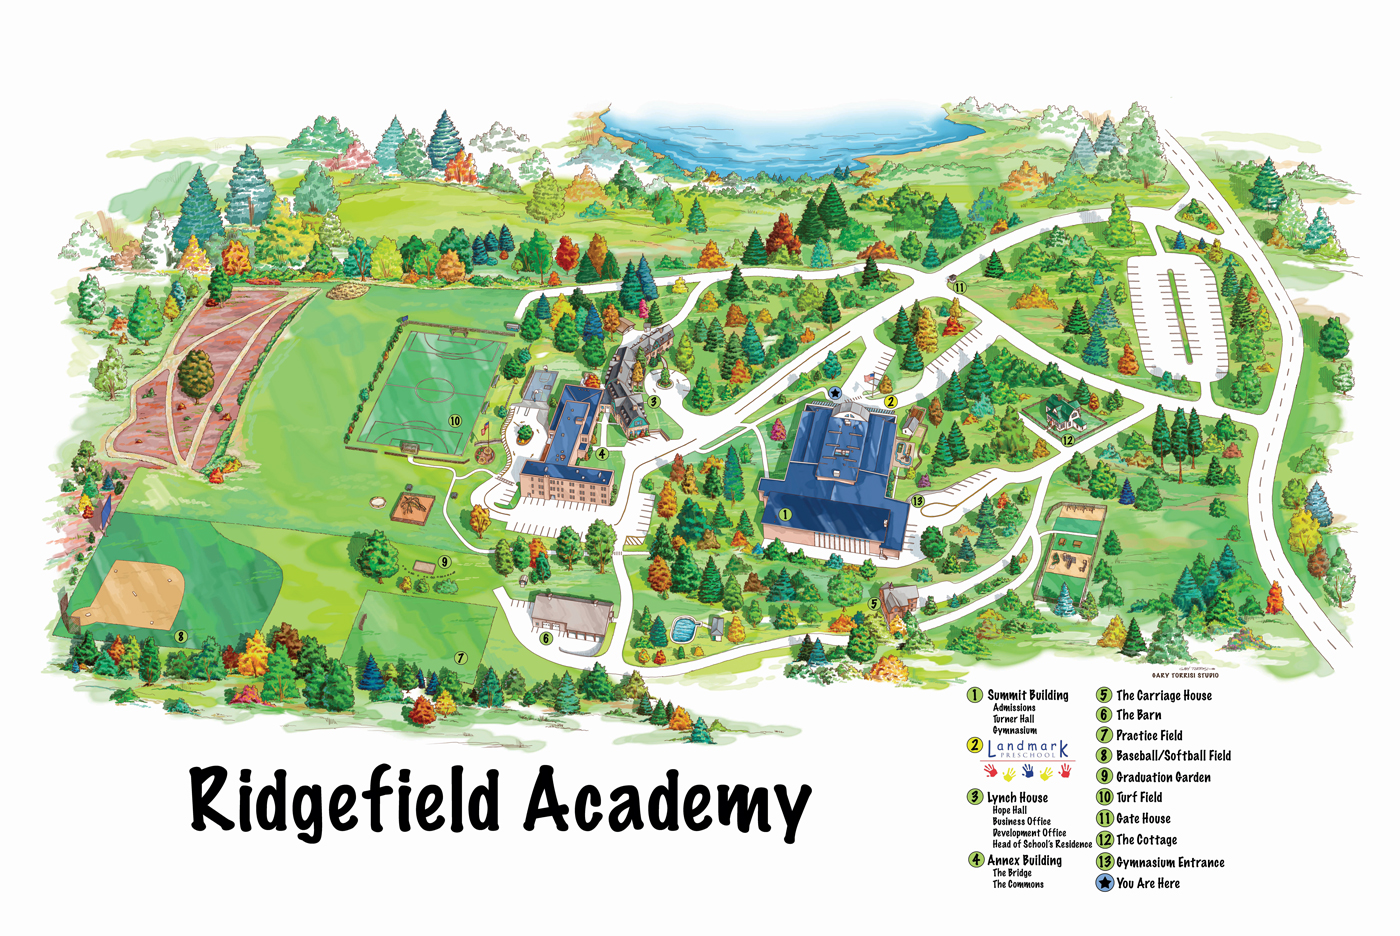 Ridgefield Academy Campus Map